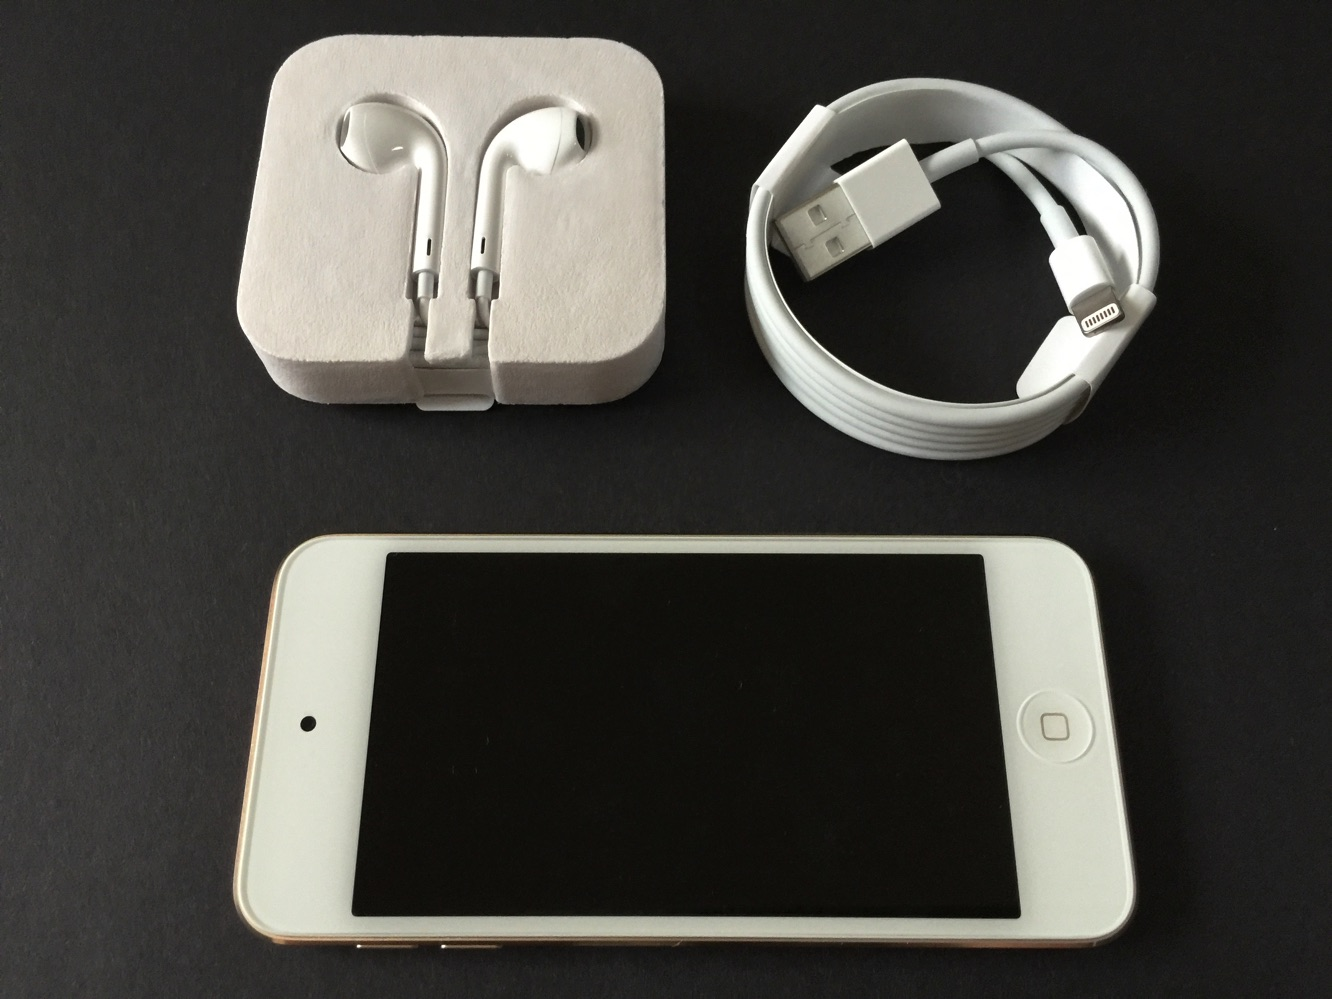 Review: Apple iPod touch (Sixth-Generation)